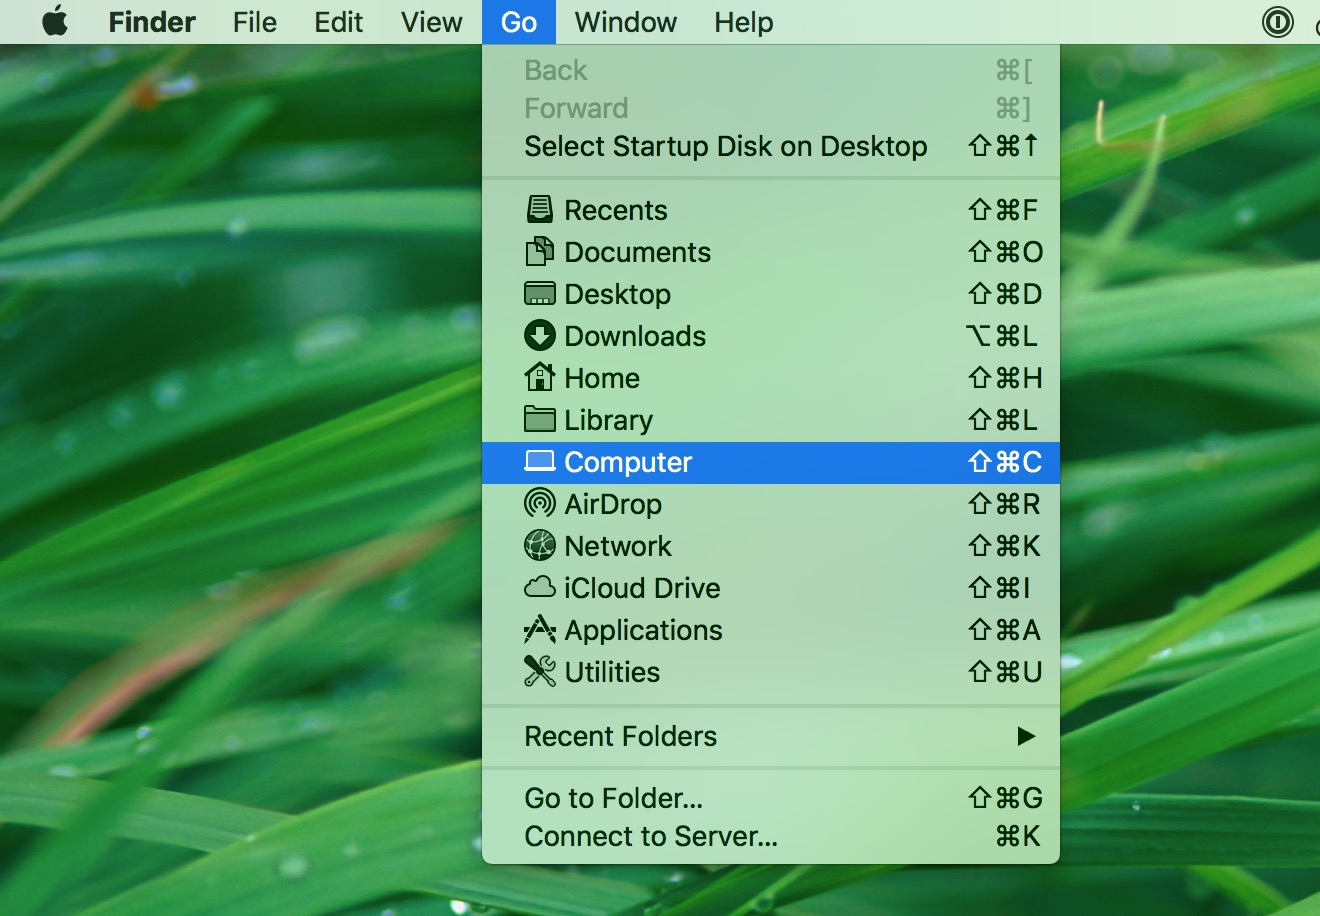 """Go"" Menu in Finder on macOS"